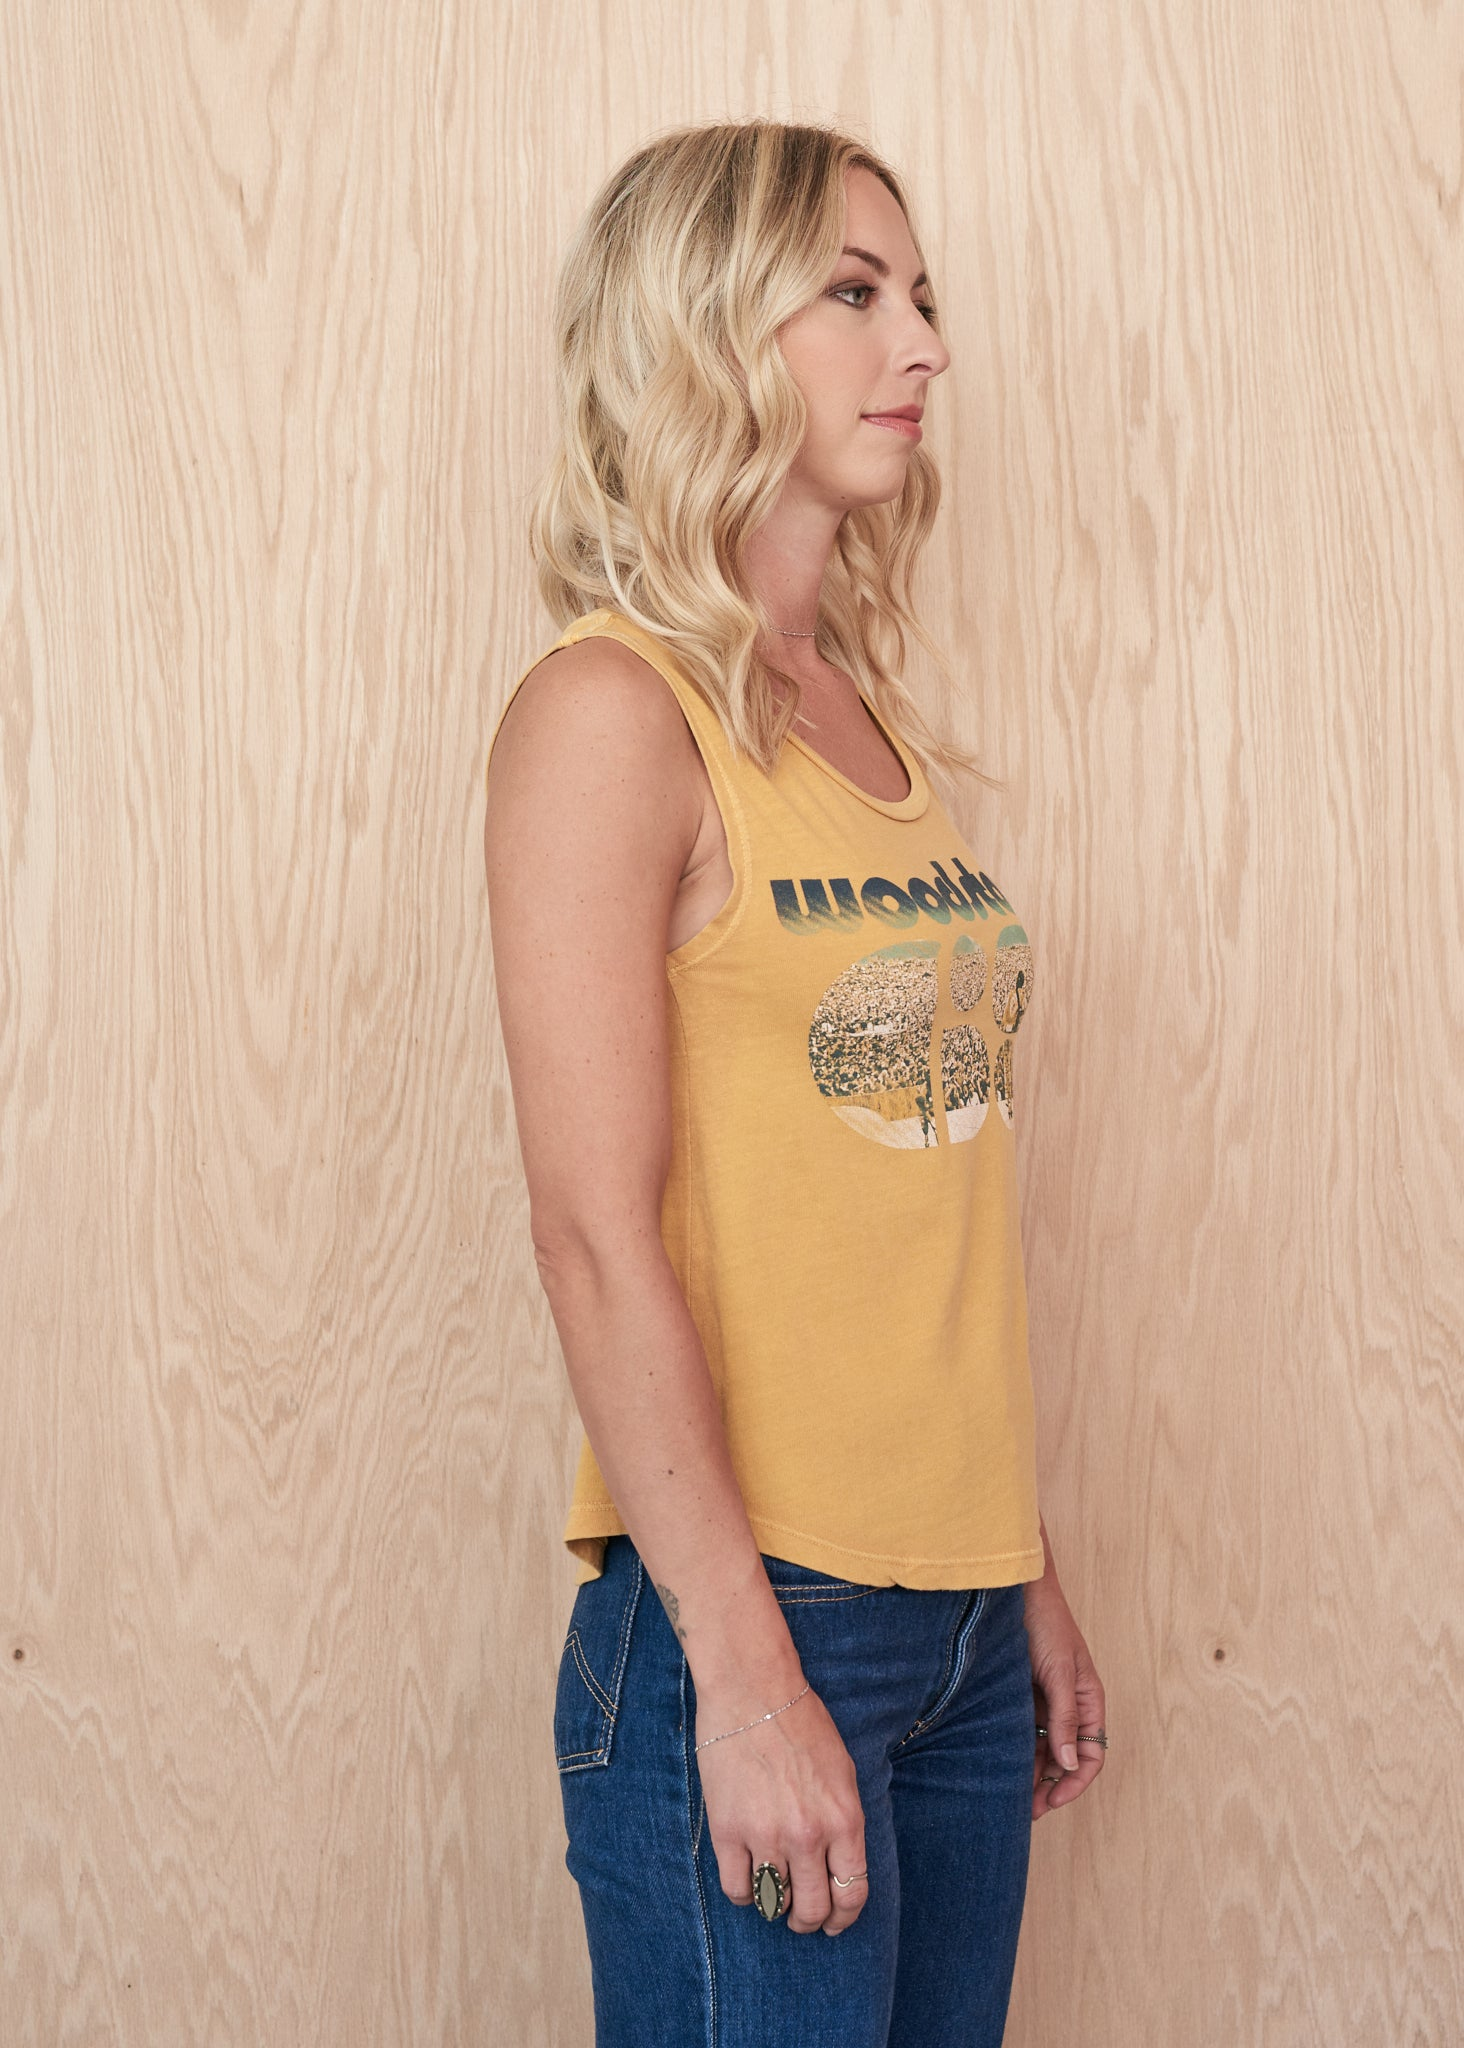 Woodstock '69 Muscle Tee Finished Muscle